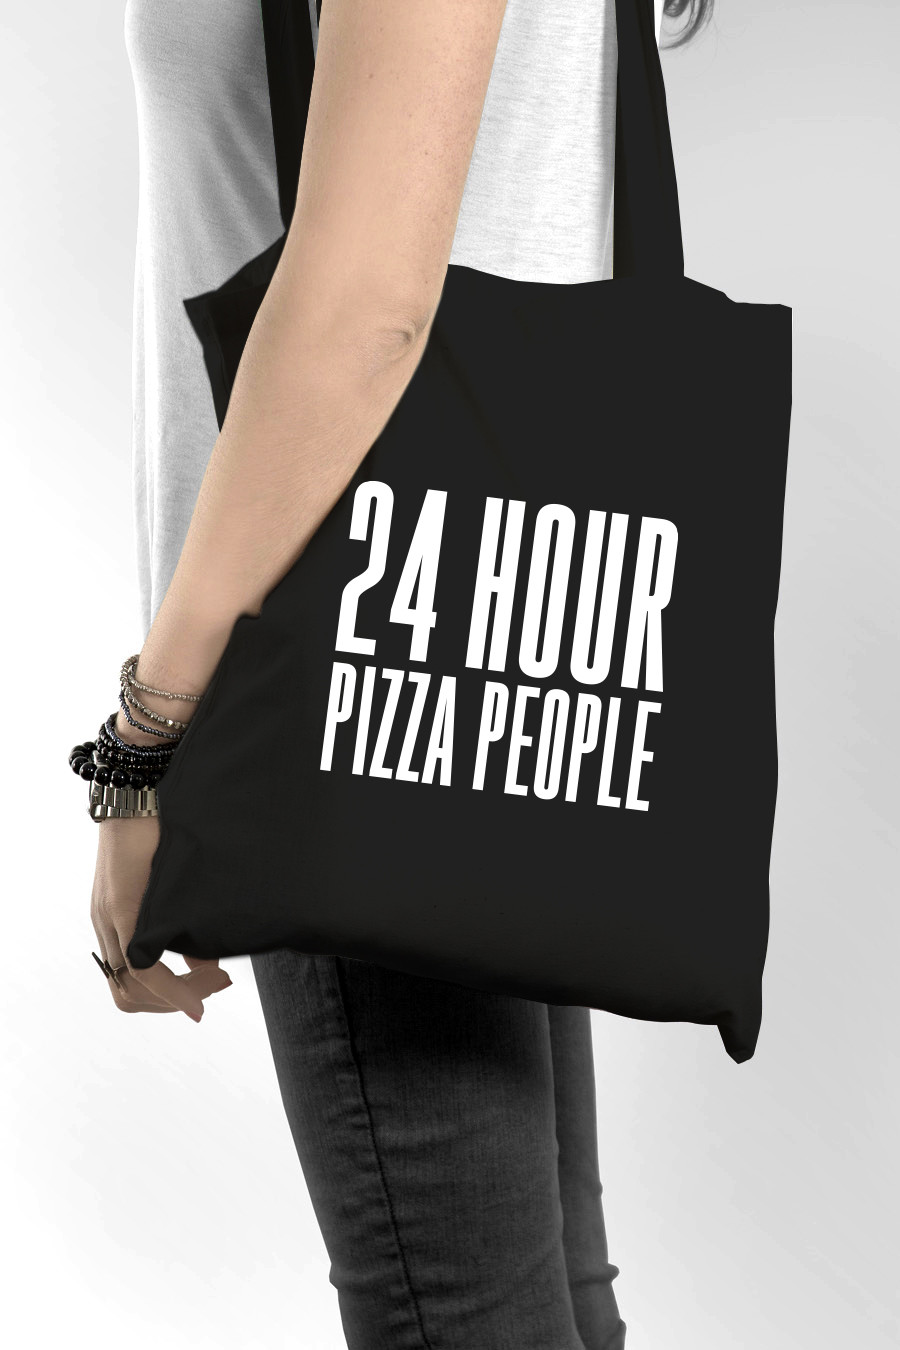 24 HOUR PIZZA PEOPLE - BAG